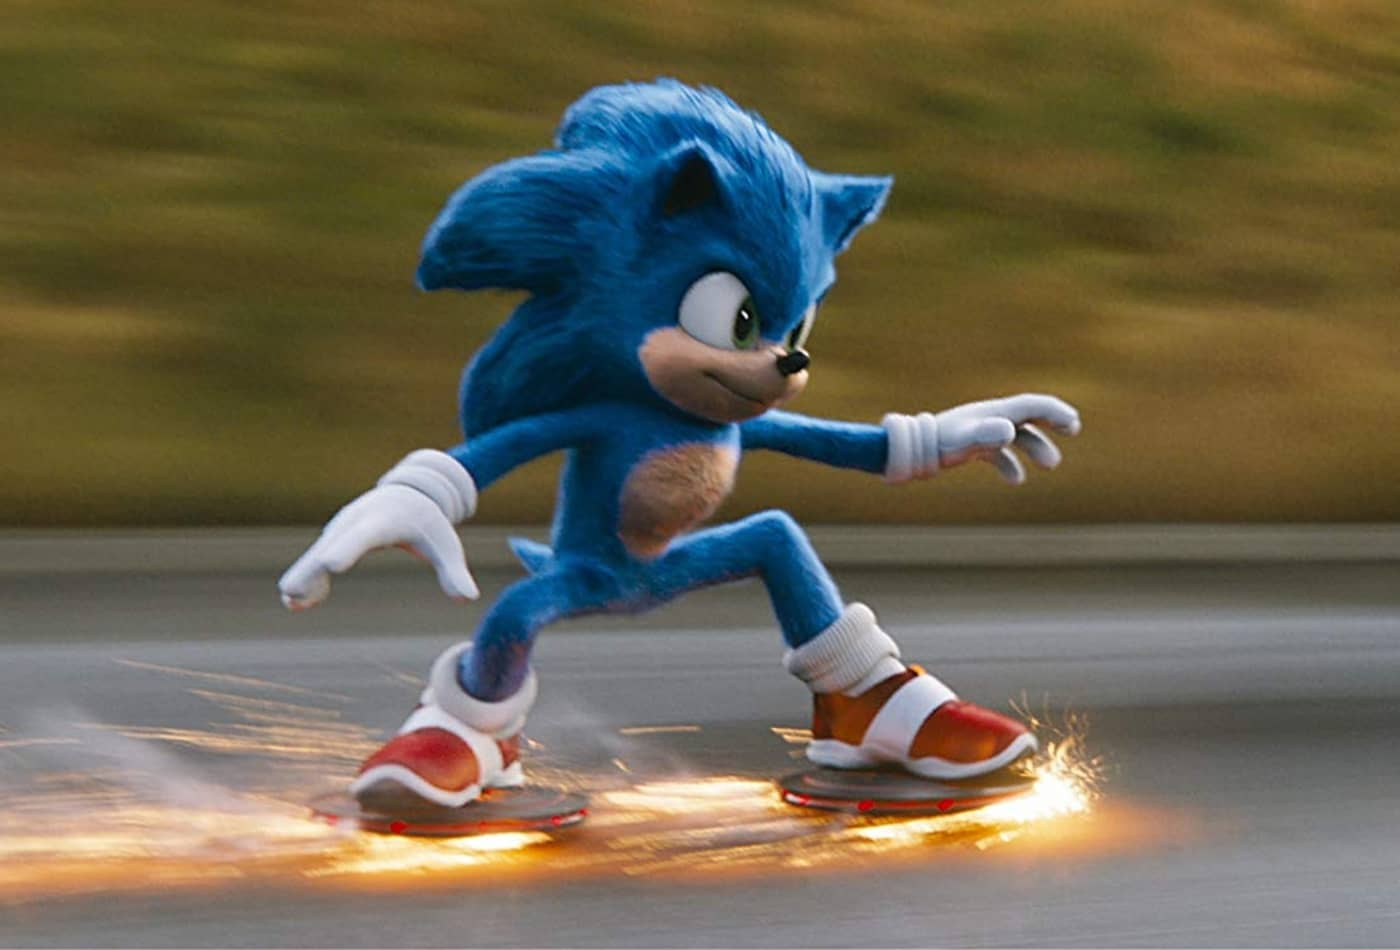 'Sonic the Hedgehog' breaks video game movie curse with record $57 million opening weekend